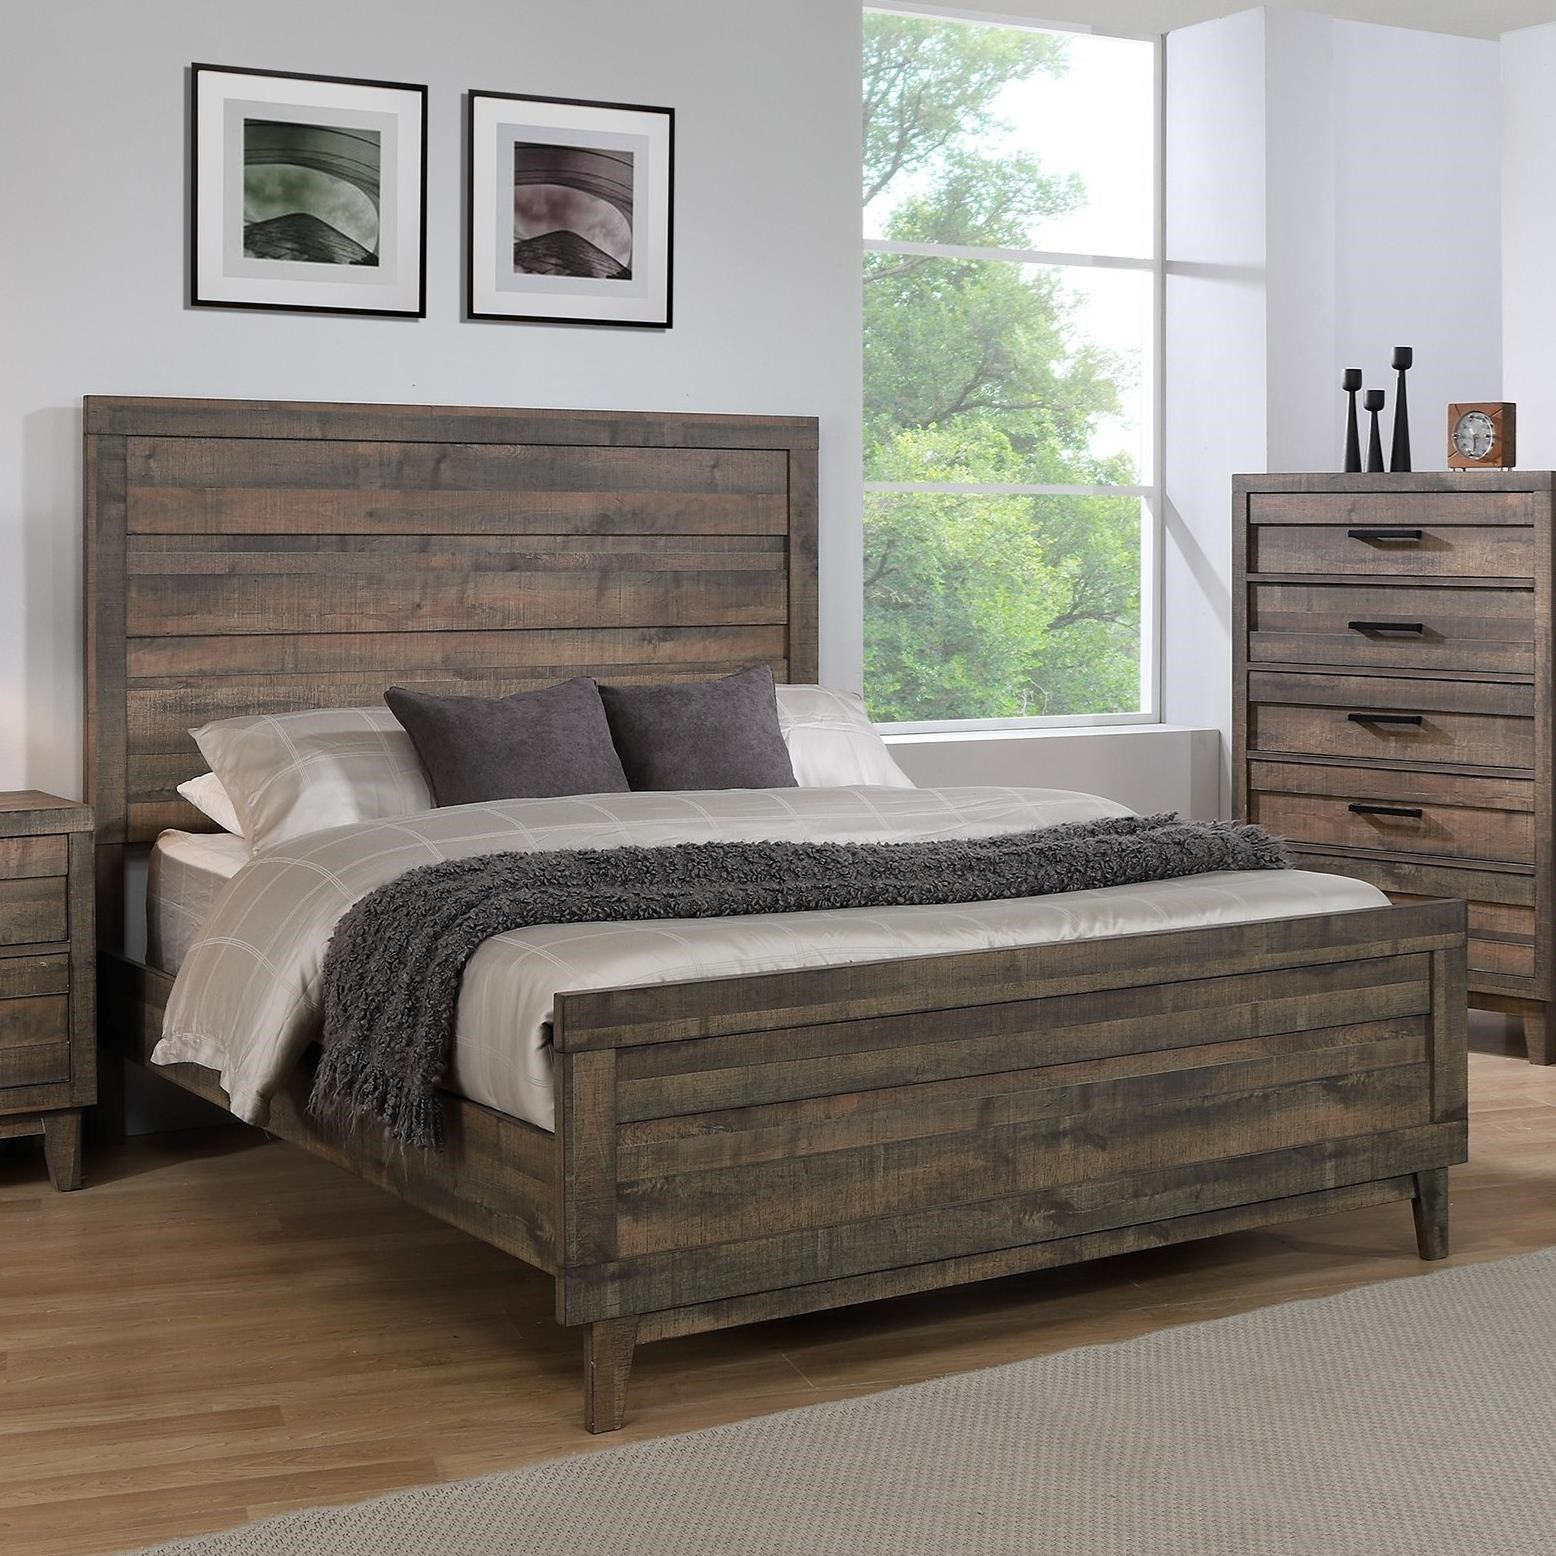 Tacoma California King Panel Bed by Crown Mark at Northeast Factory Direct